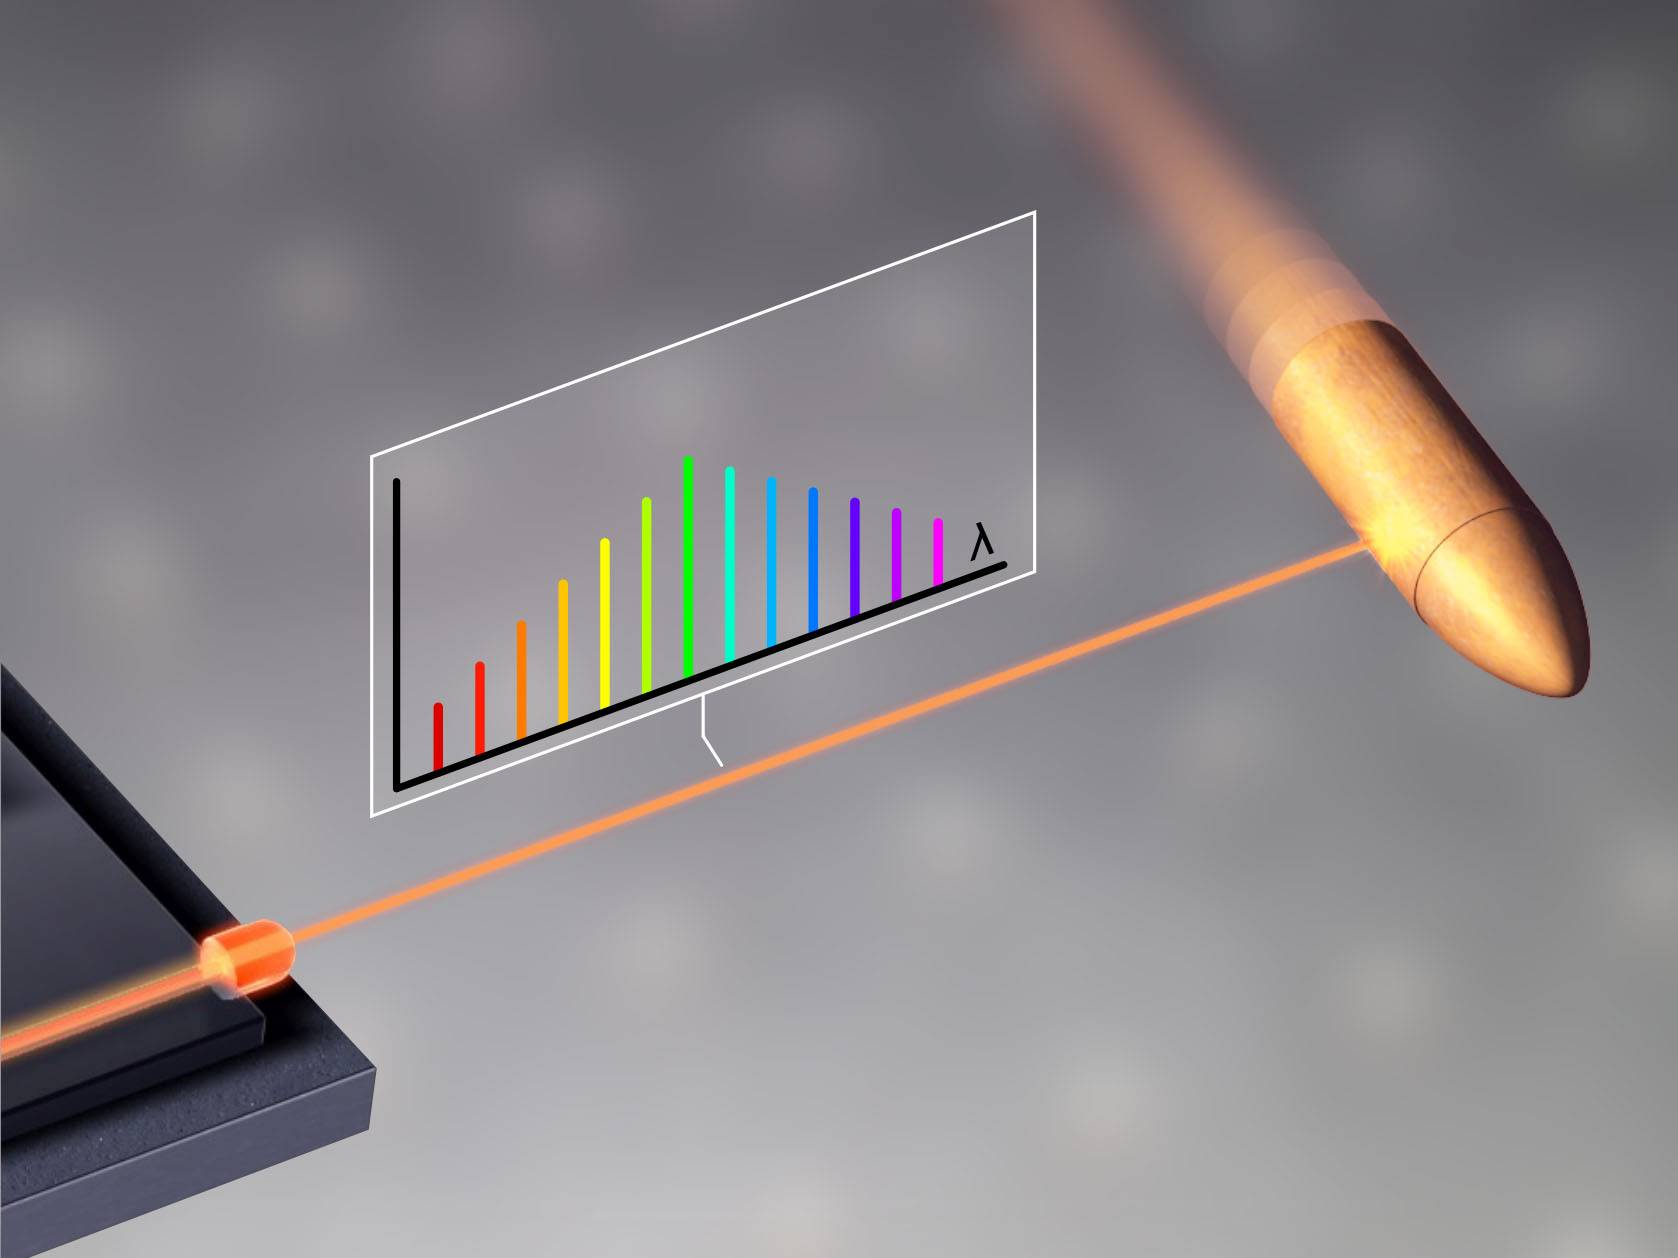 Graphic representation of measurement with a laser beam on a bullet